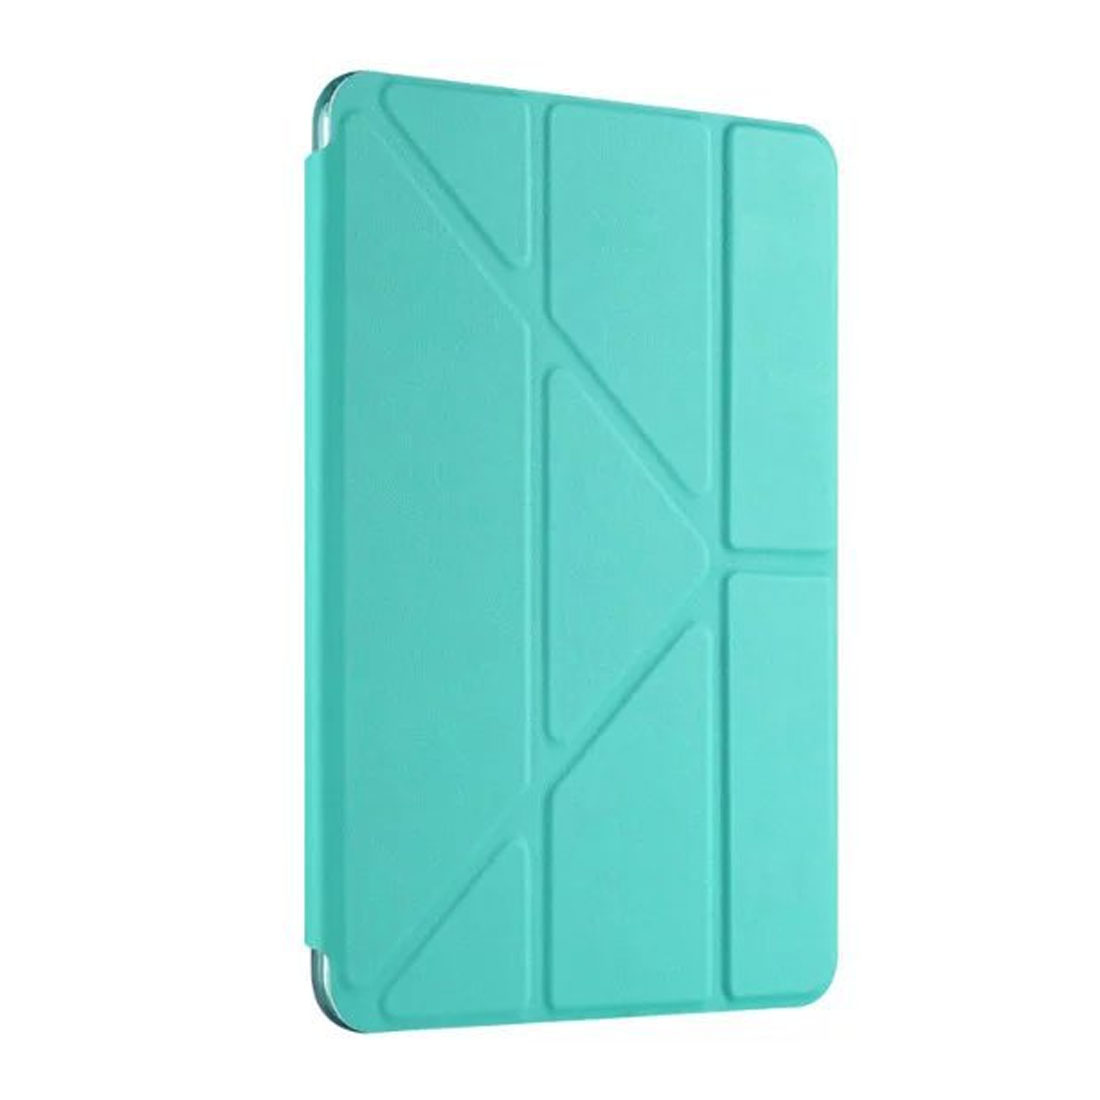 Etmakit Ultra Thin Design Stand TPU Soft case For ipad mini 3 2 1 Cover Colorful Flip Smart Cover Smart Table Case cover nice clear flexible tpu silicone bottom back case for apple ipad mini 1 2 3 case smart cover partner thin transperent